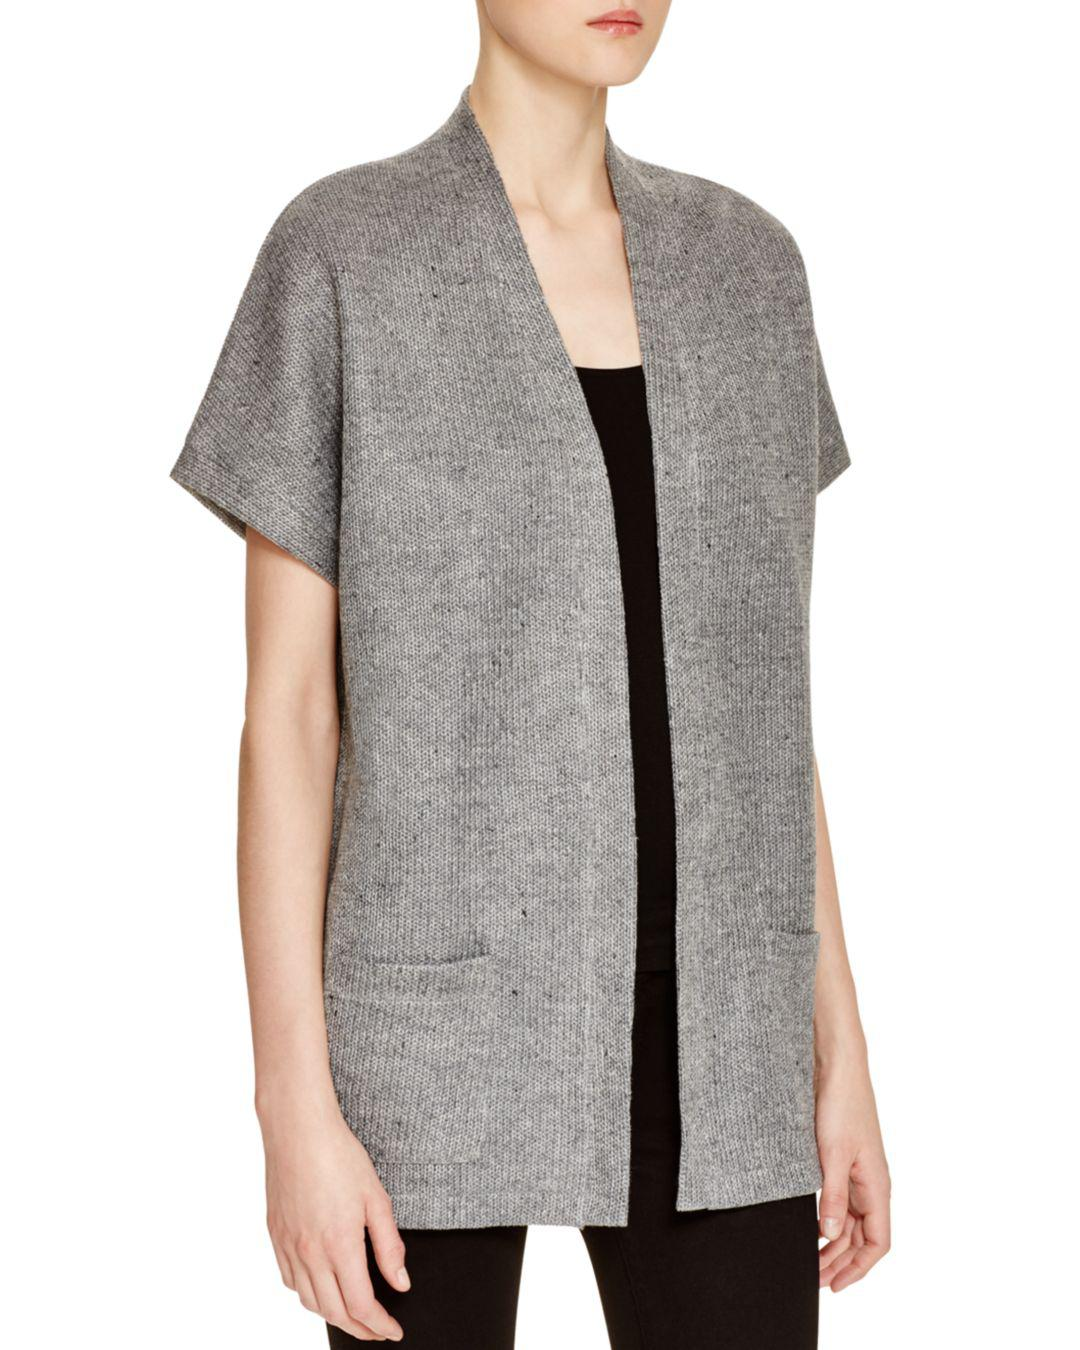 1054403f21 Majestic Filatures Short Sleeve Donegal Cardigan in Gray - Lyst